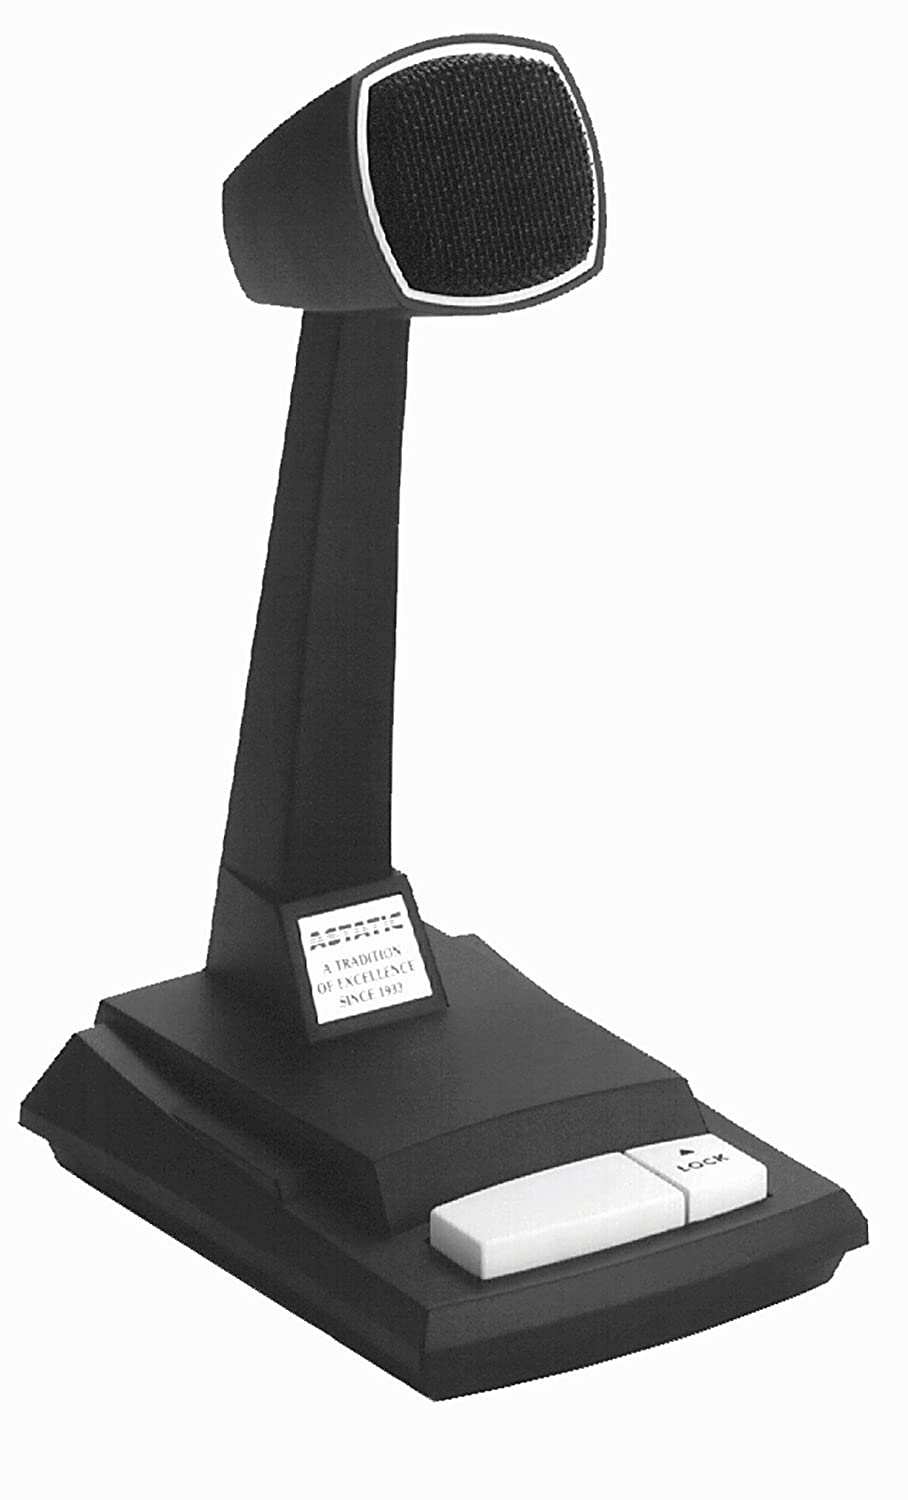 Astatic Omnidirectional Dynamic Desk Top Microphone with Locking Push to Talk Switch CAD Microphones 878HL-2